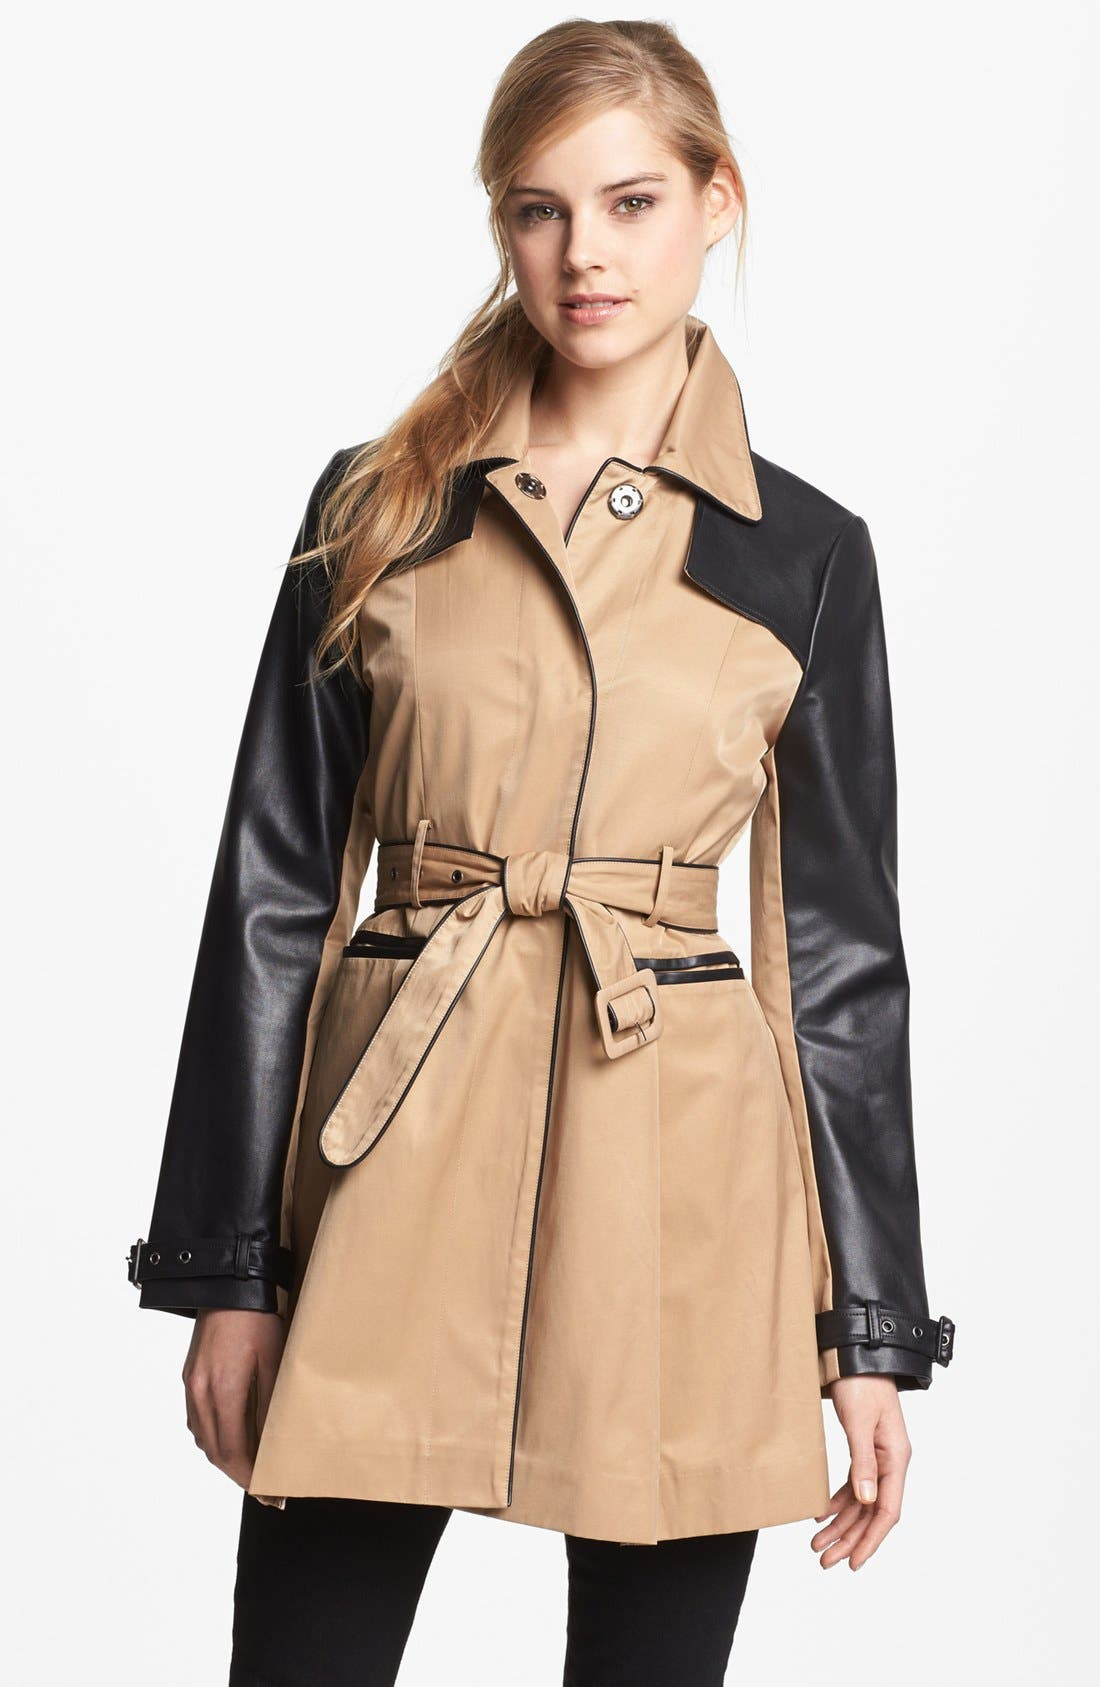 BEBE, Faux Leather Trim Trench Coat, Alternate thumbnail 3, color, 250